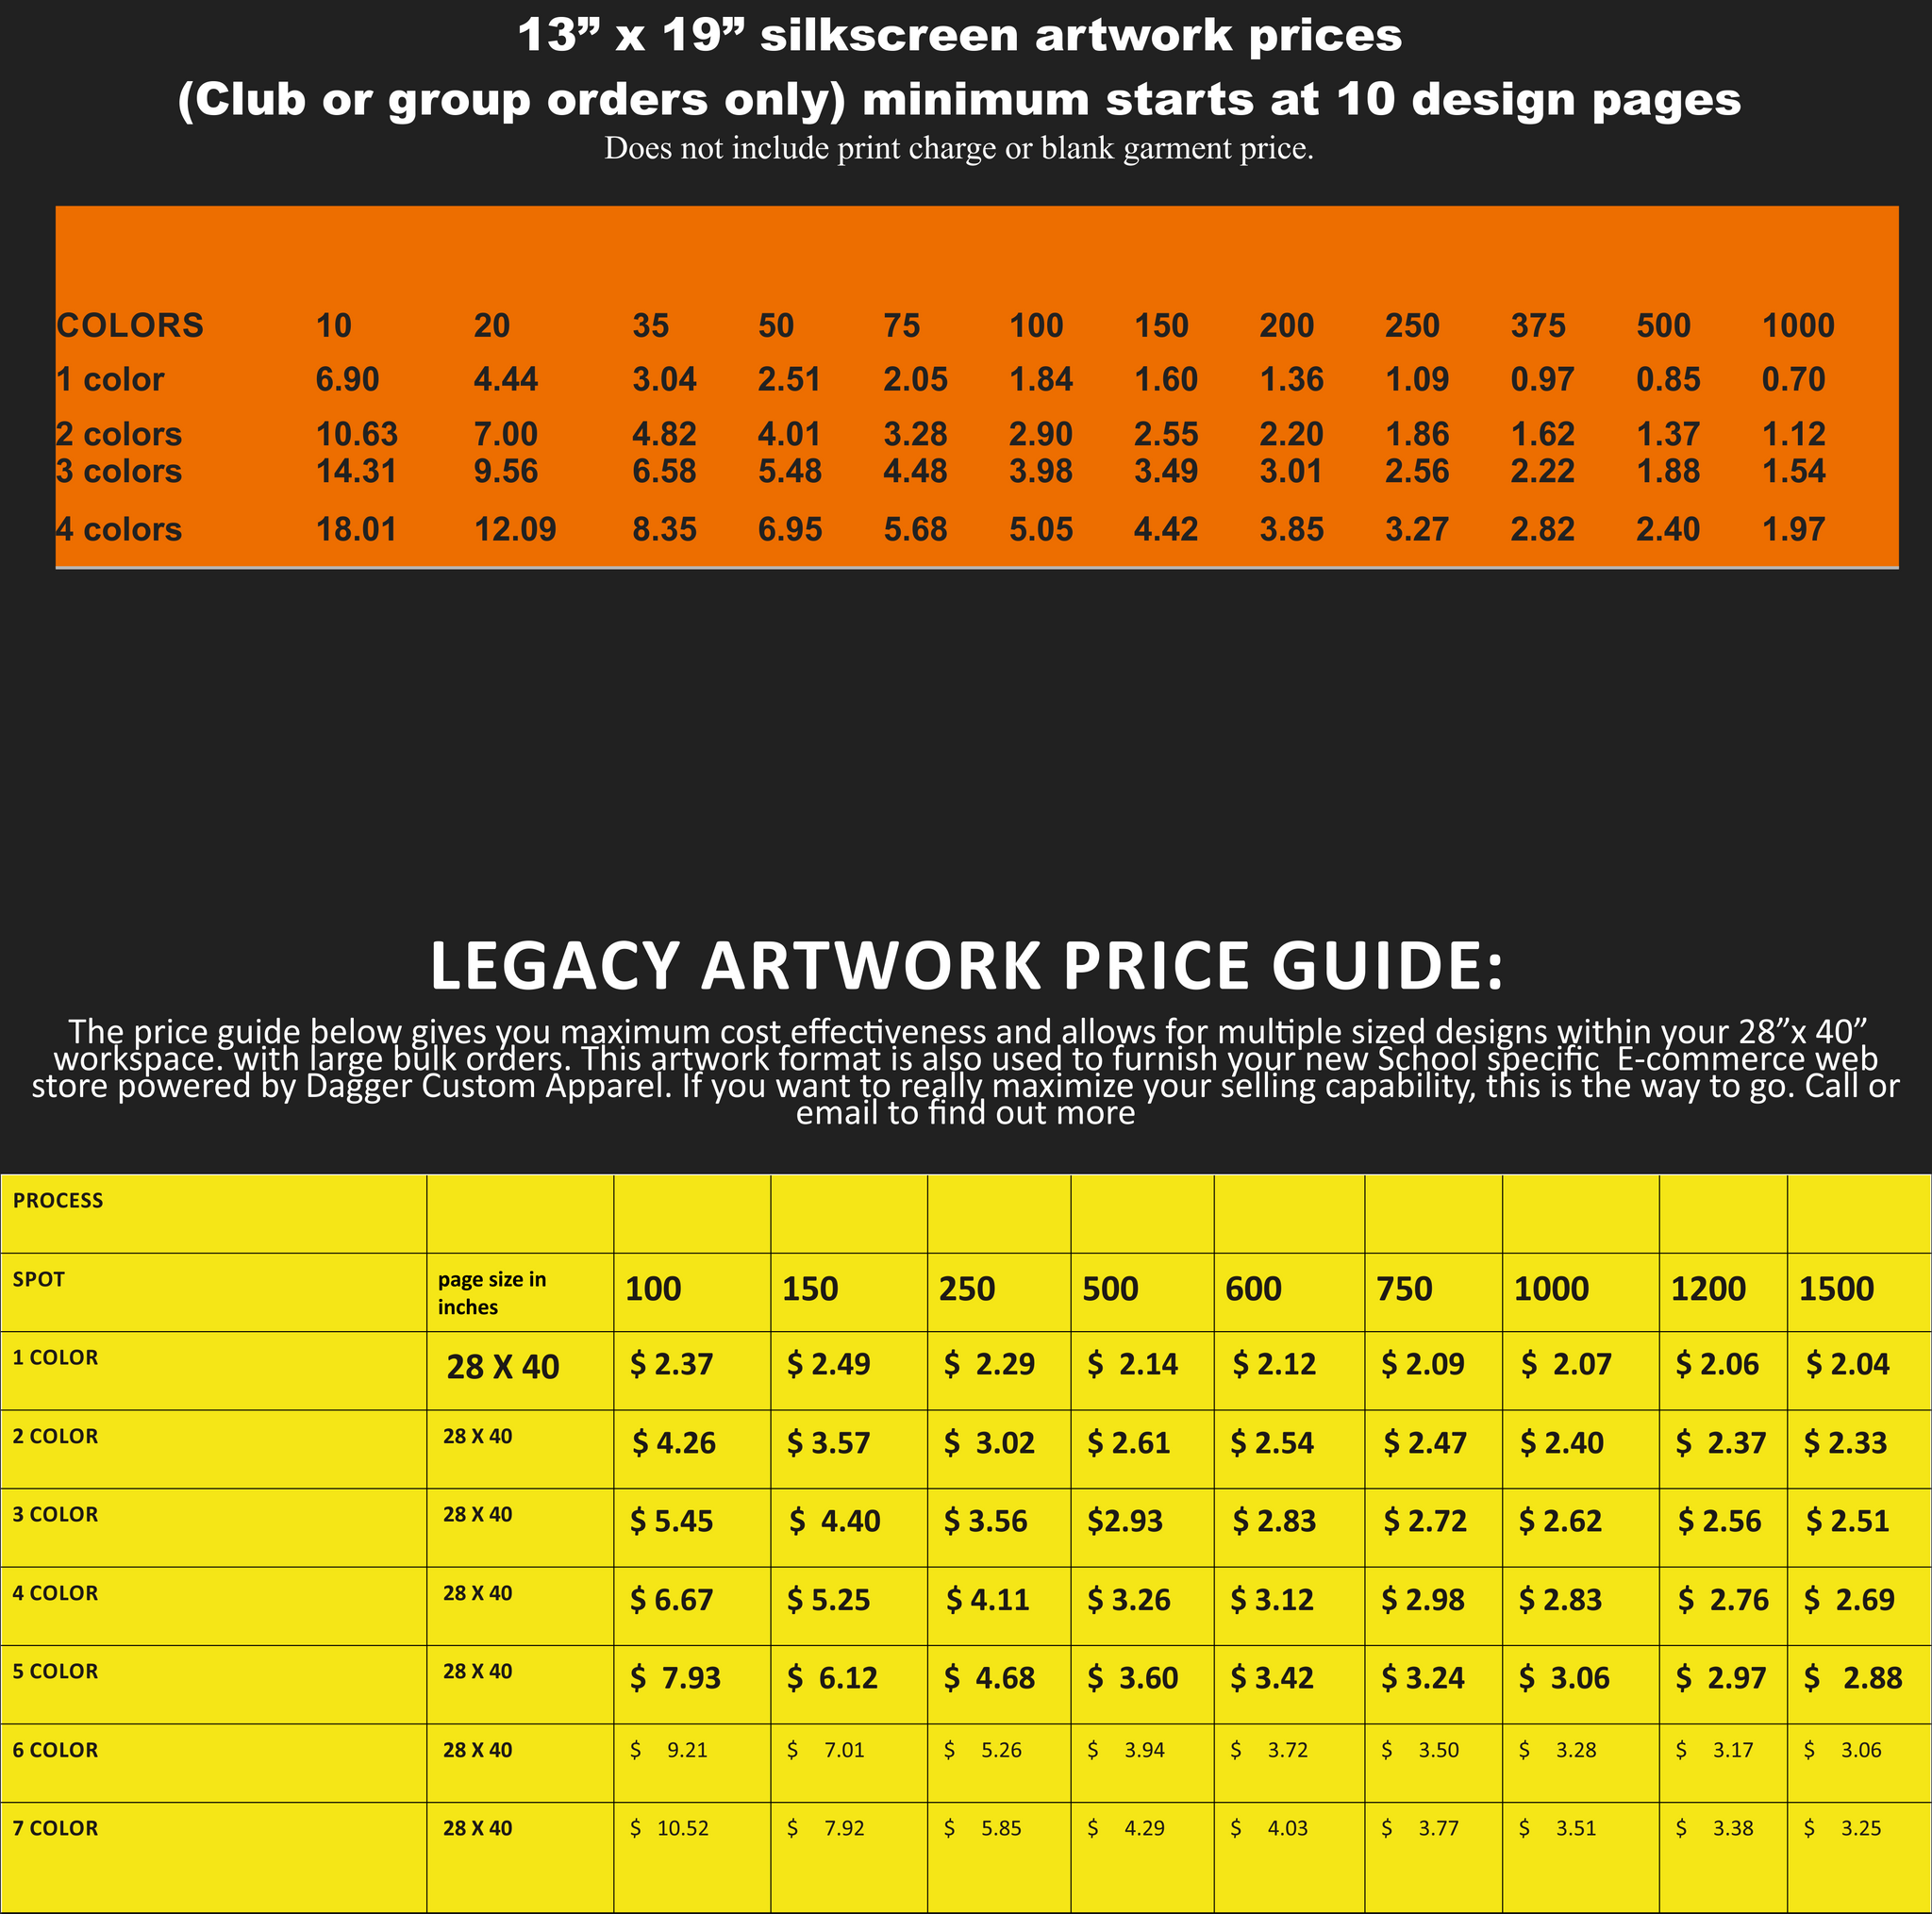 ARTWORK GANG SHEET PRICE GUIDES